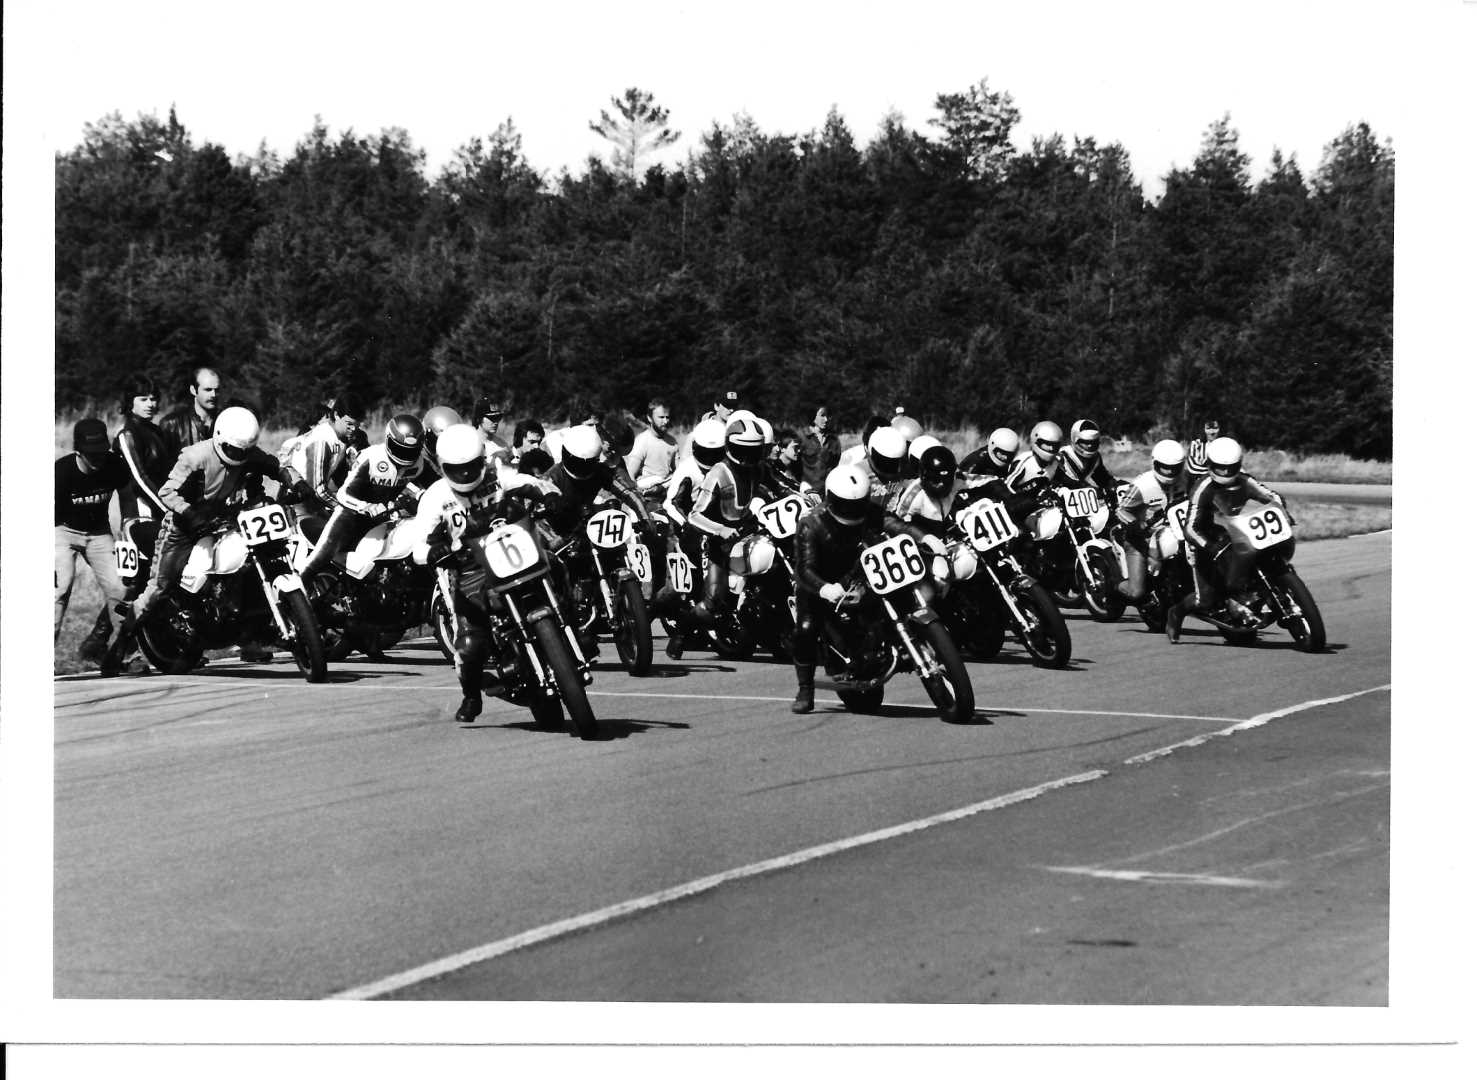 1981 Pro 550: The start of the first RACE round, at Shannonville